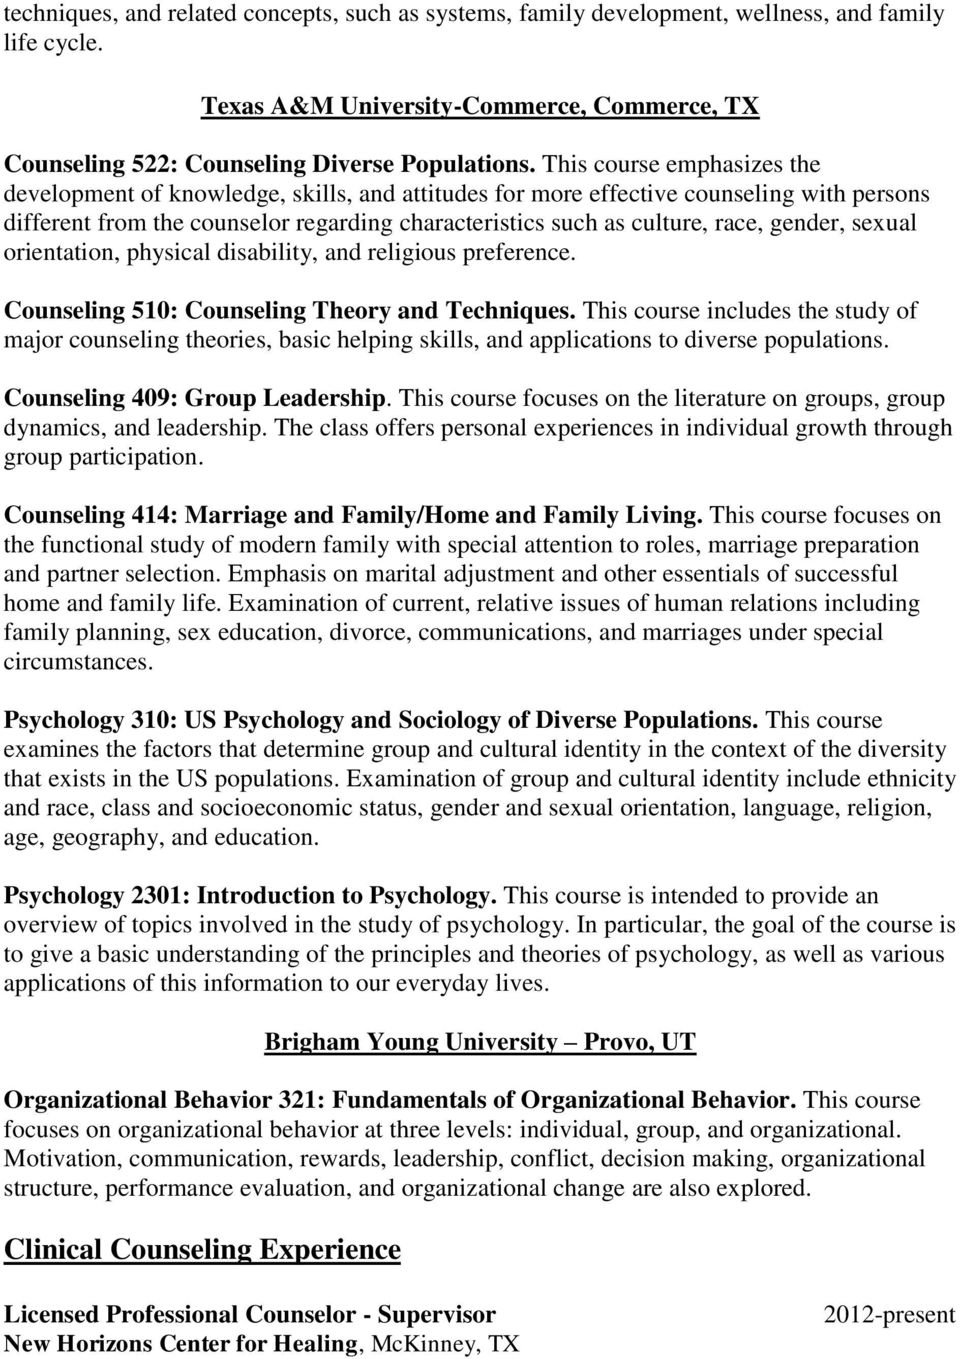 gender, sexual orientation, physical disability, and religious preference. Counseling 510: Counseling Theory and Techniques.